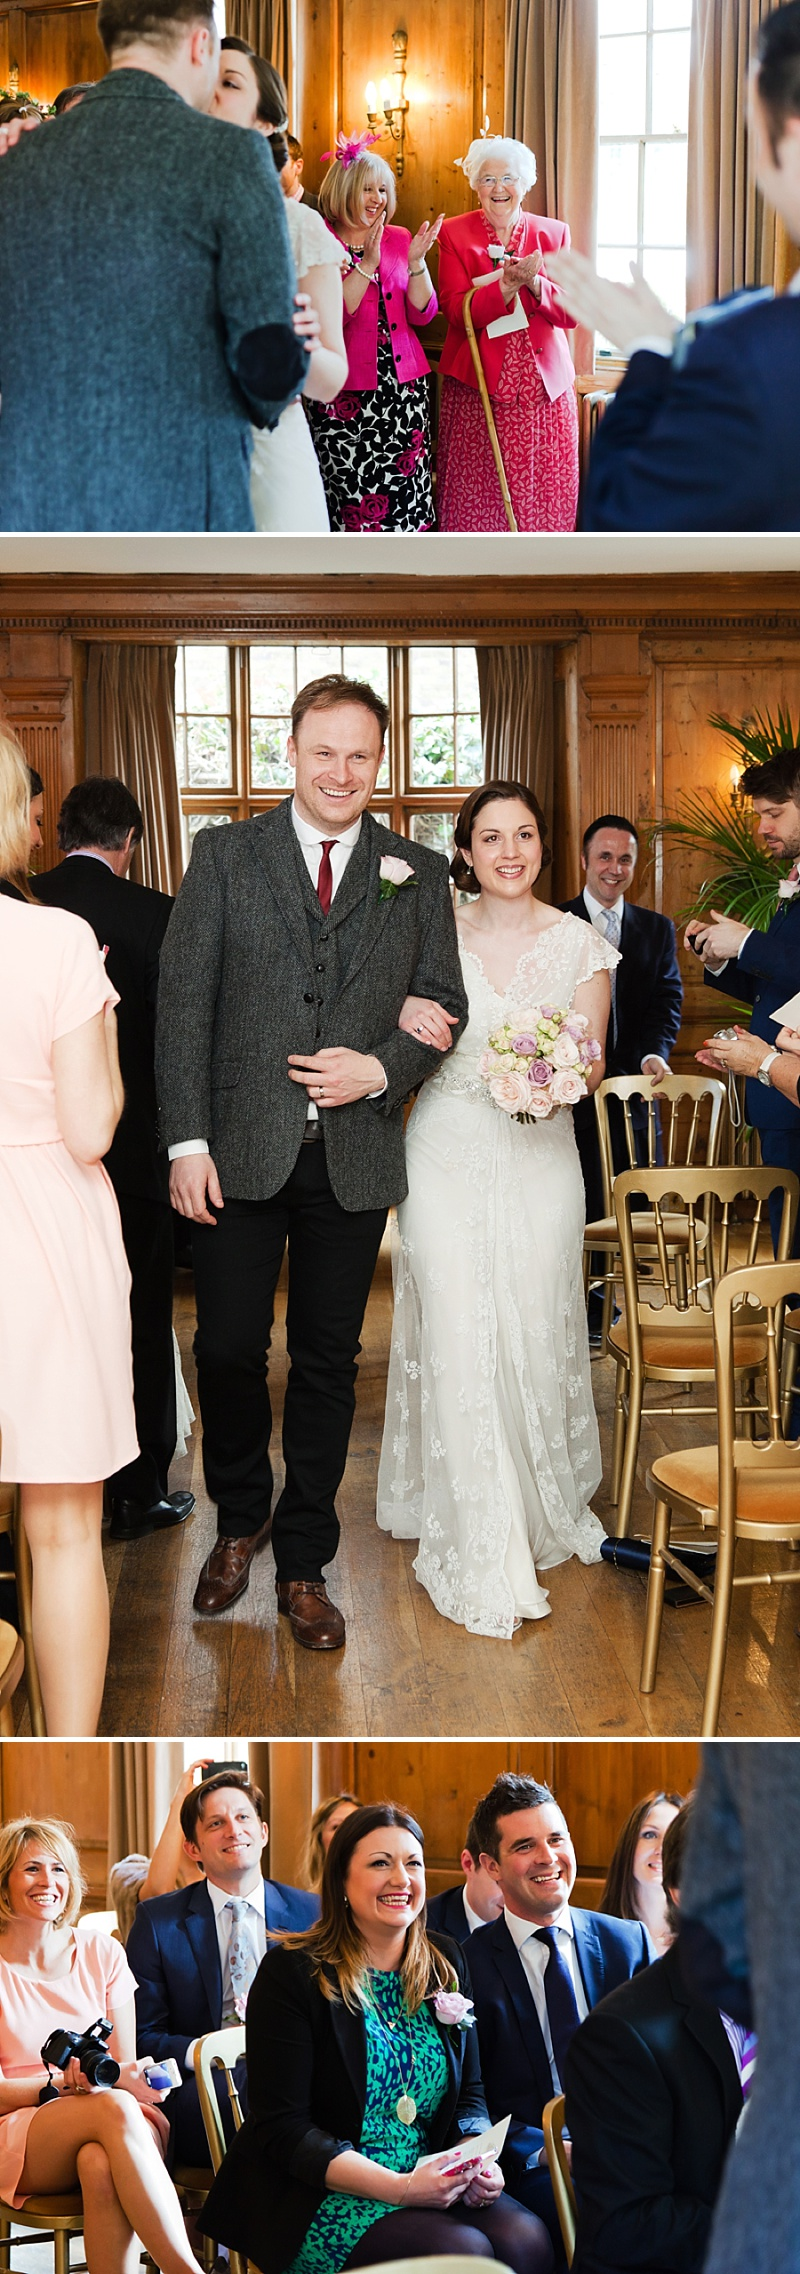 An-Intimate-20s-styled-Wedding-At-Kettner's-Soho,-Bride-in-Jane-Bourvis-Gown_0018